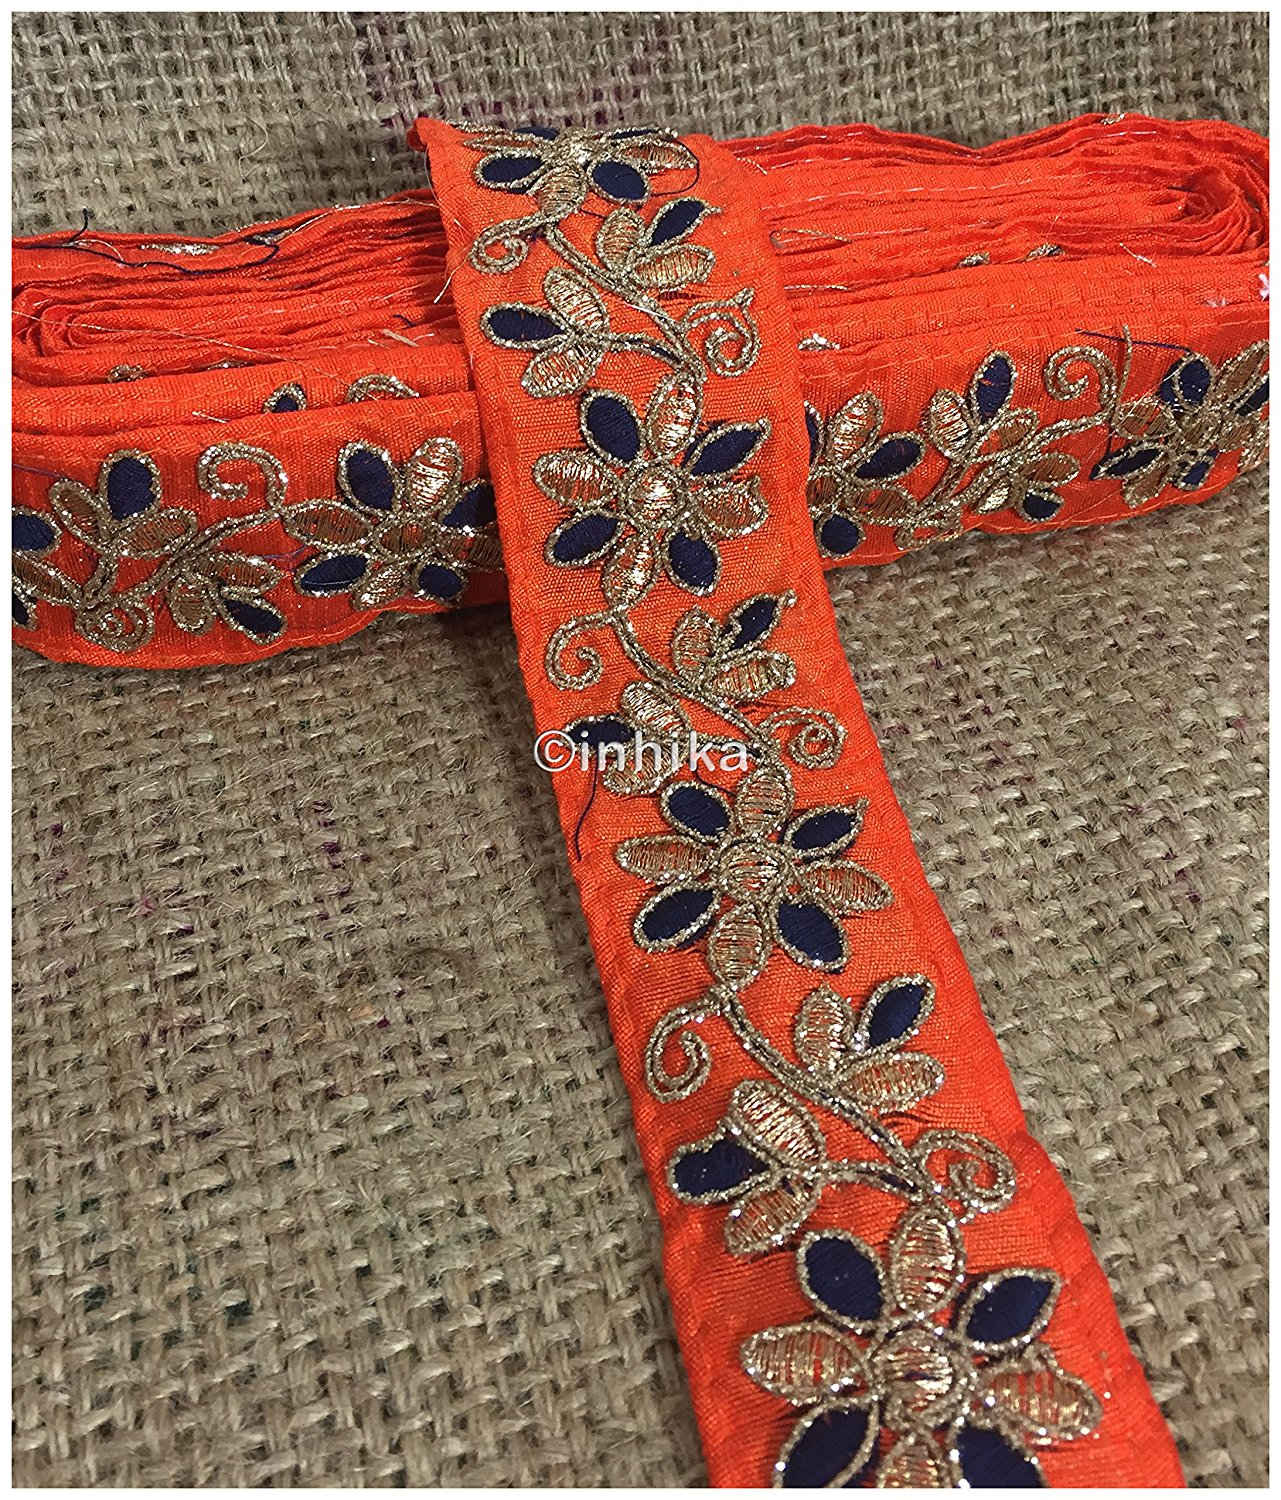 lace trim fabric where to buy fringe for clothing Orange-Flower-Embroidered-2-Inch-Wide-3214